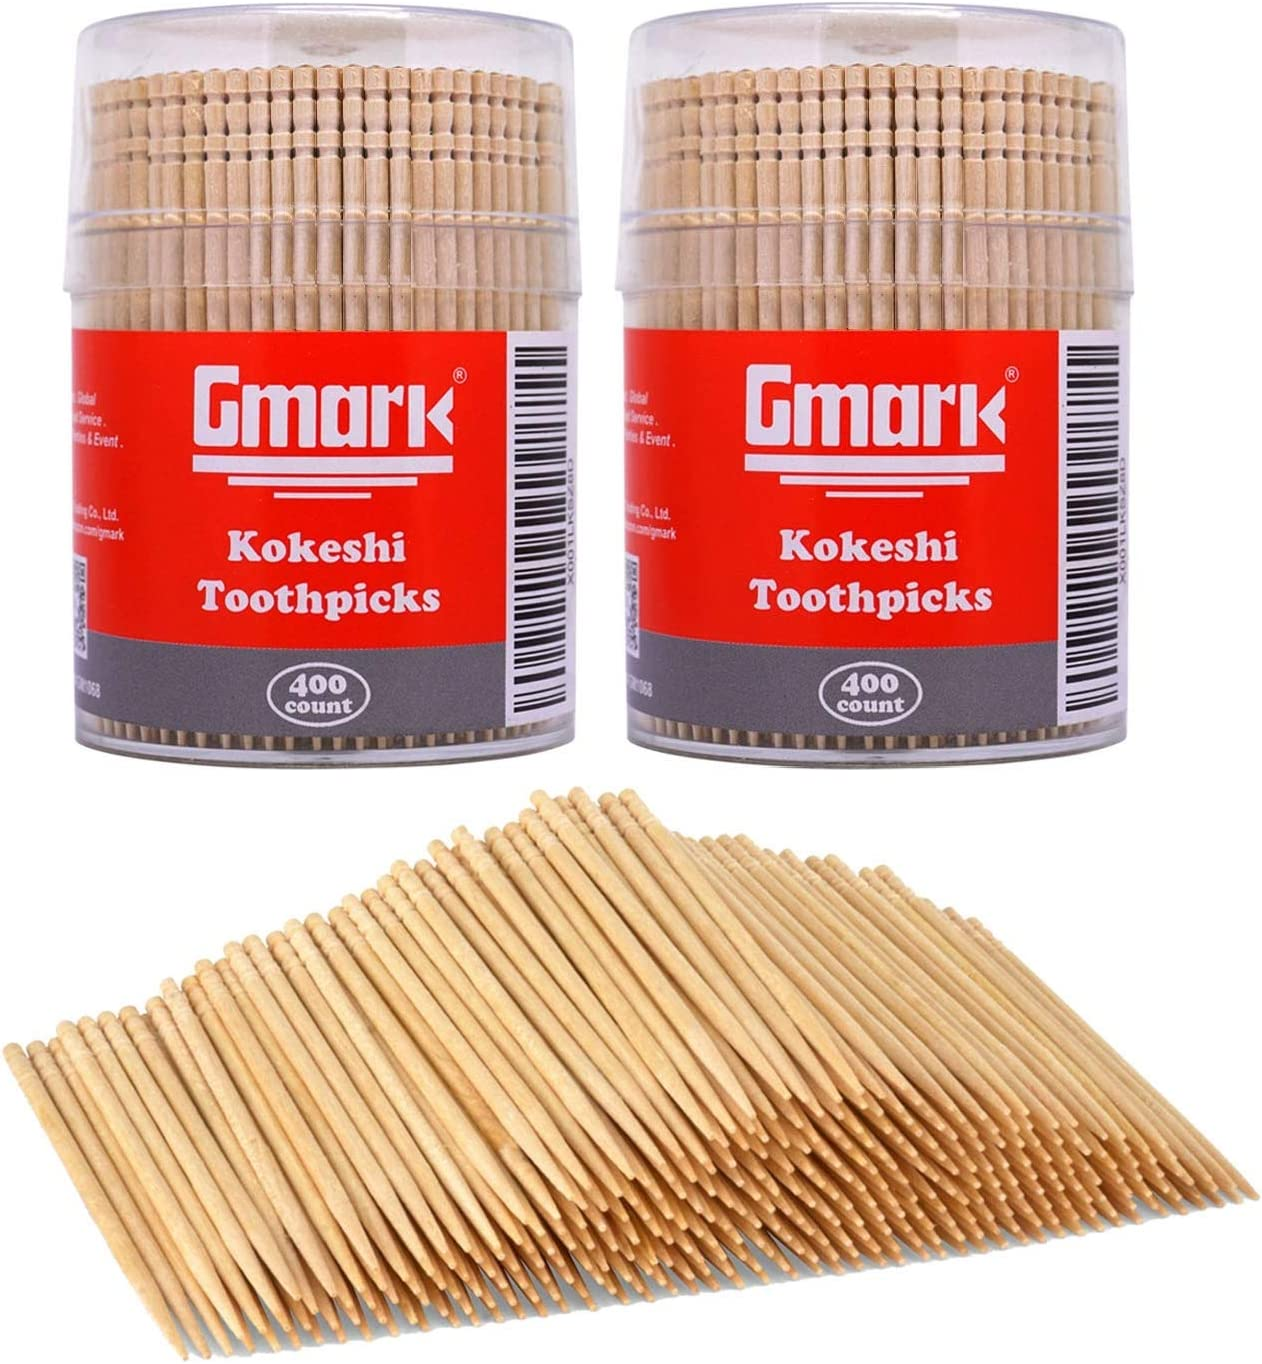 """Gmark Wooden Toothpicks 800 Pieces Ornate Handle, Cocktail Safe Use Sturdy Round Holder 2 Packs of 400, 2.6"""" Kokeshi Toothpicks - Japanese Style, Party Appetizer Olive Fruit Teeth Cleaning GM1068"""